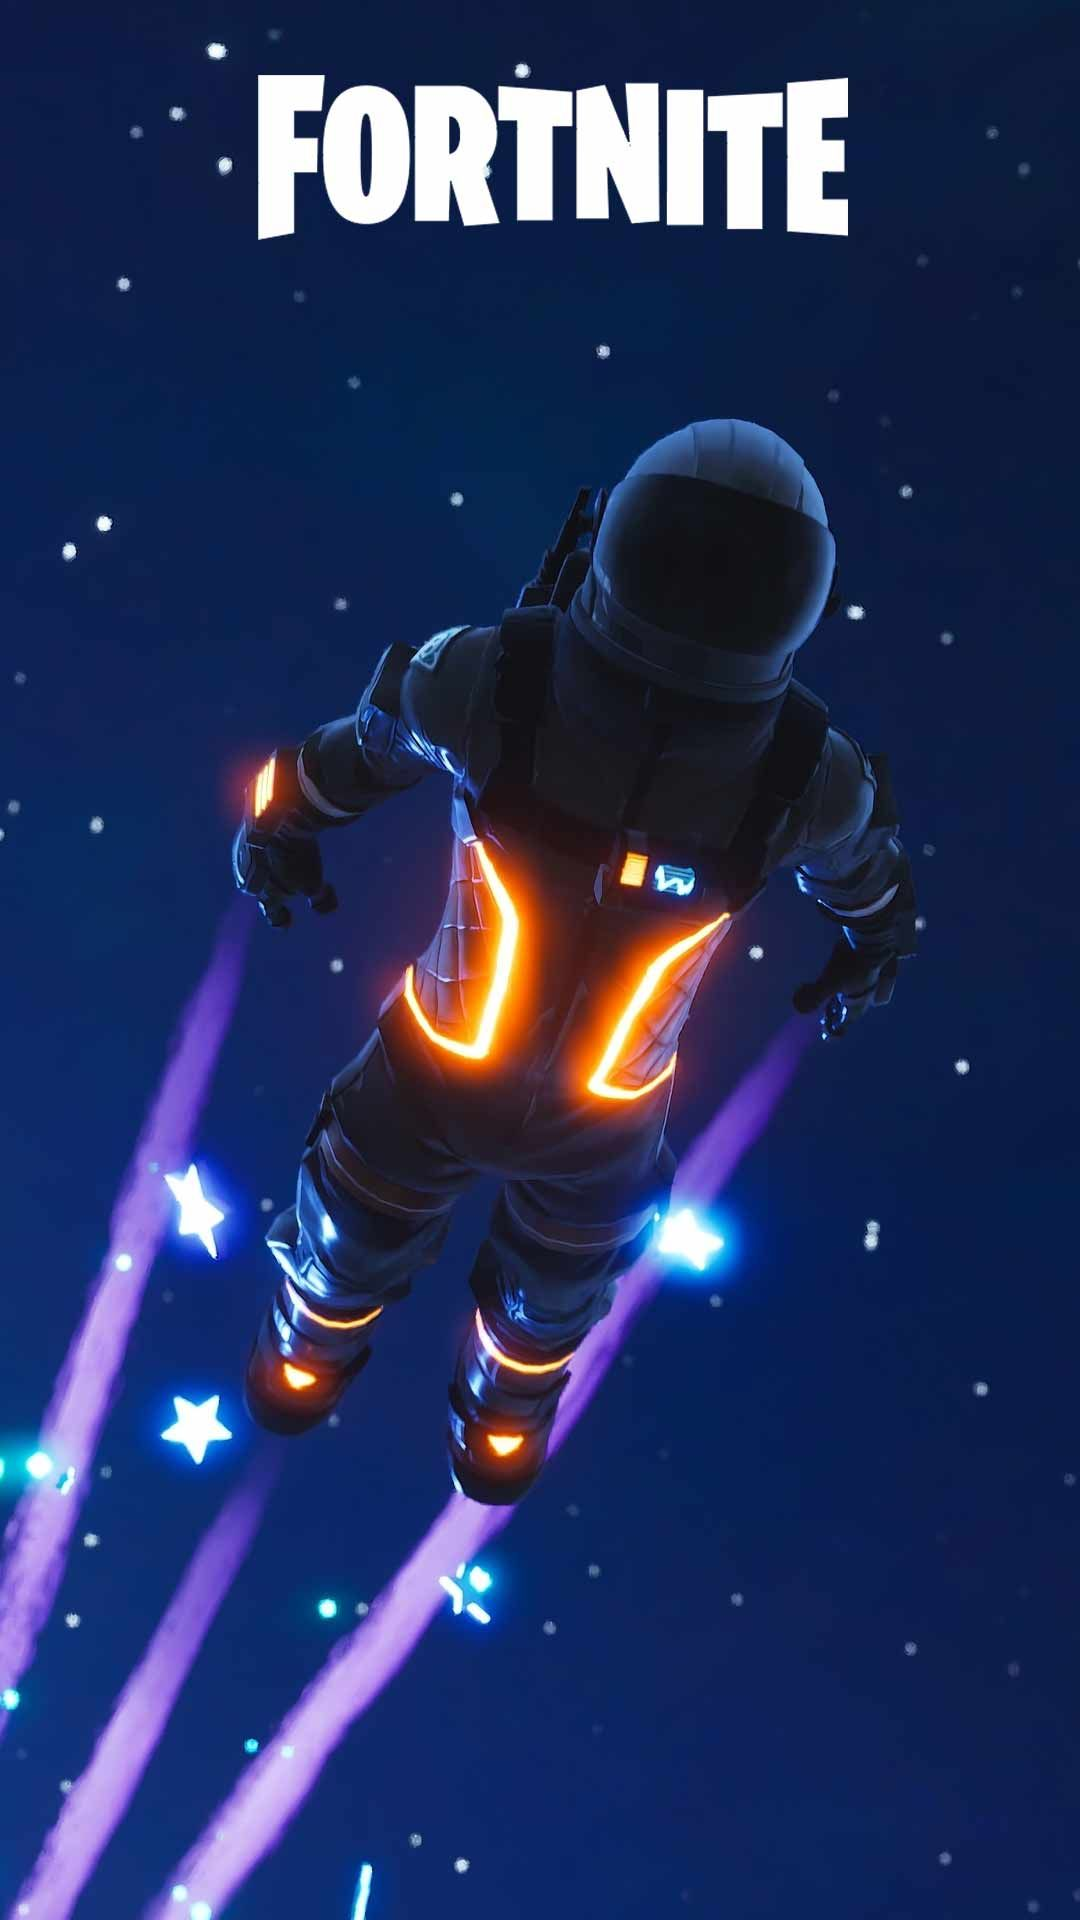 30 Fortnite Wallpaper Hd Phone Backgrounds For Iphone Android Lock Screen Characters Skins Art Good Phone Backgrounds Phone Backgrounds Phone Wallpaper